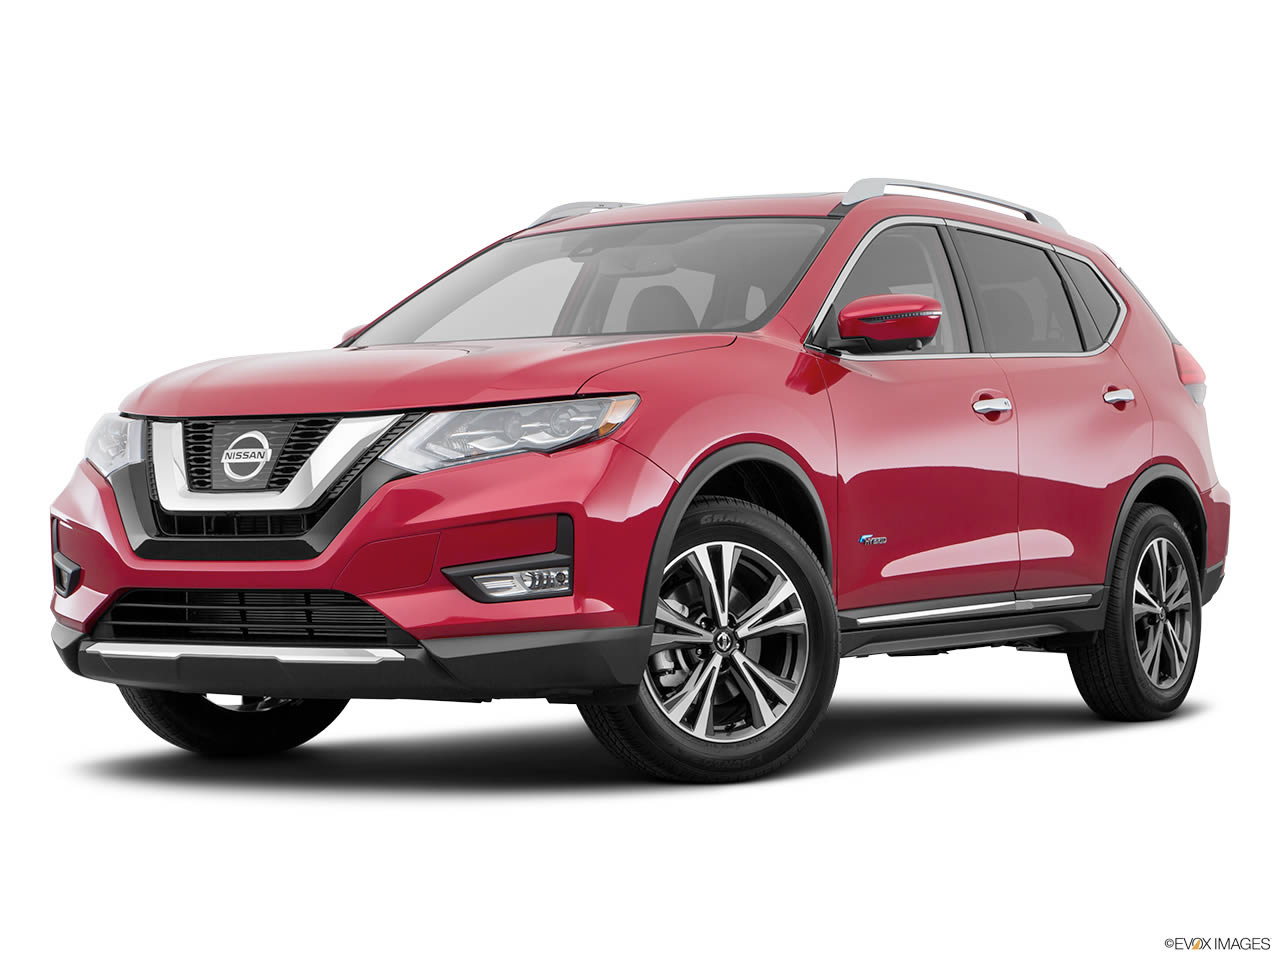 Cheapest Car To Lease Canada >> Lease a 2018 Nissan Rogue S CVT 2WD in Canada | Canada ...